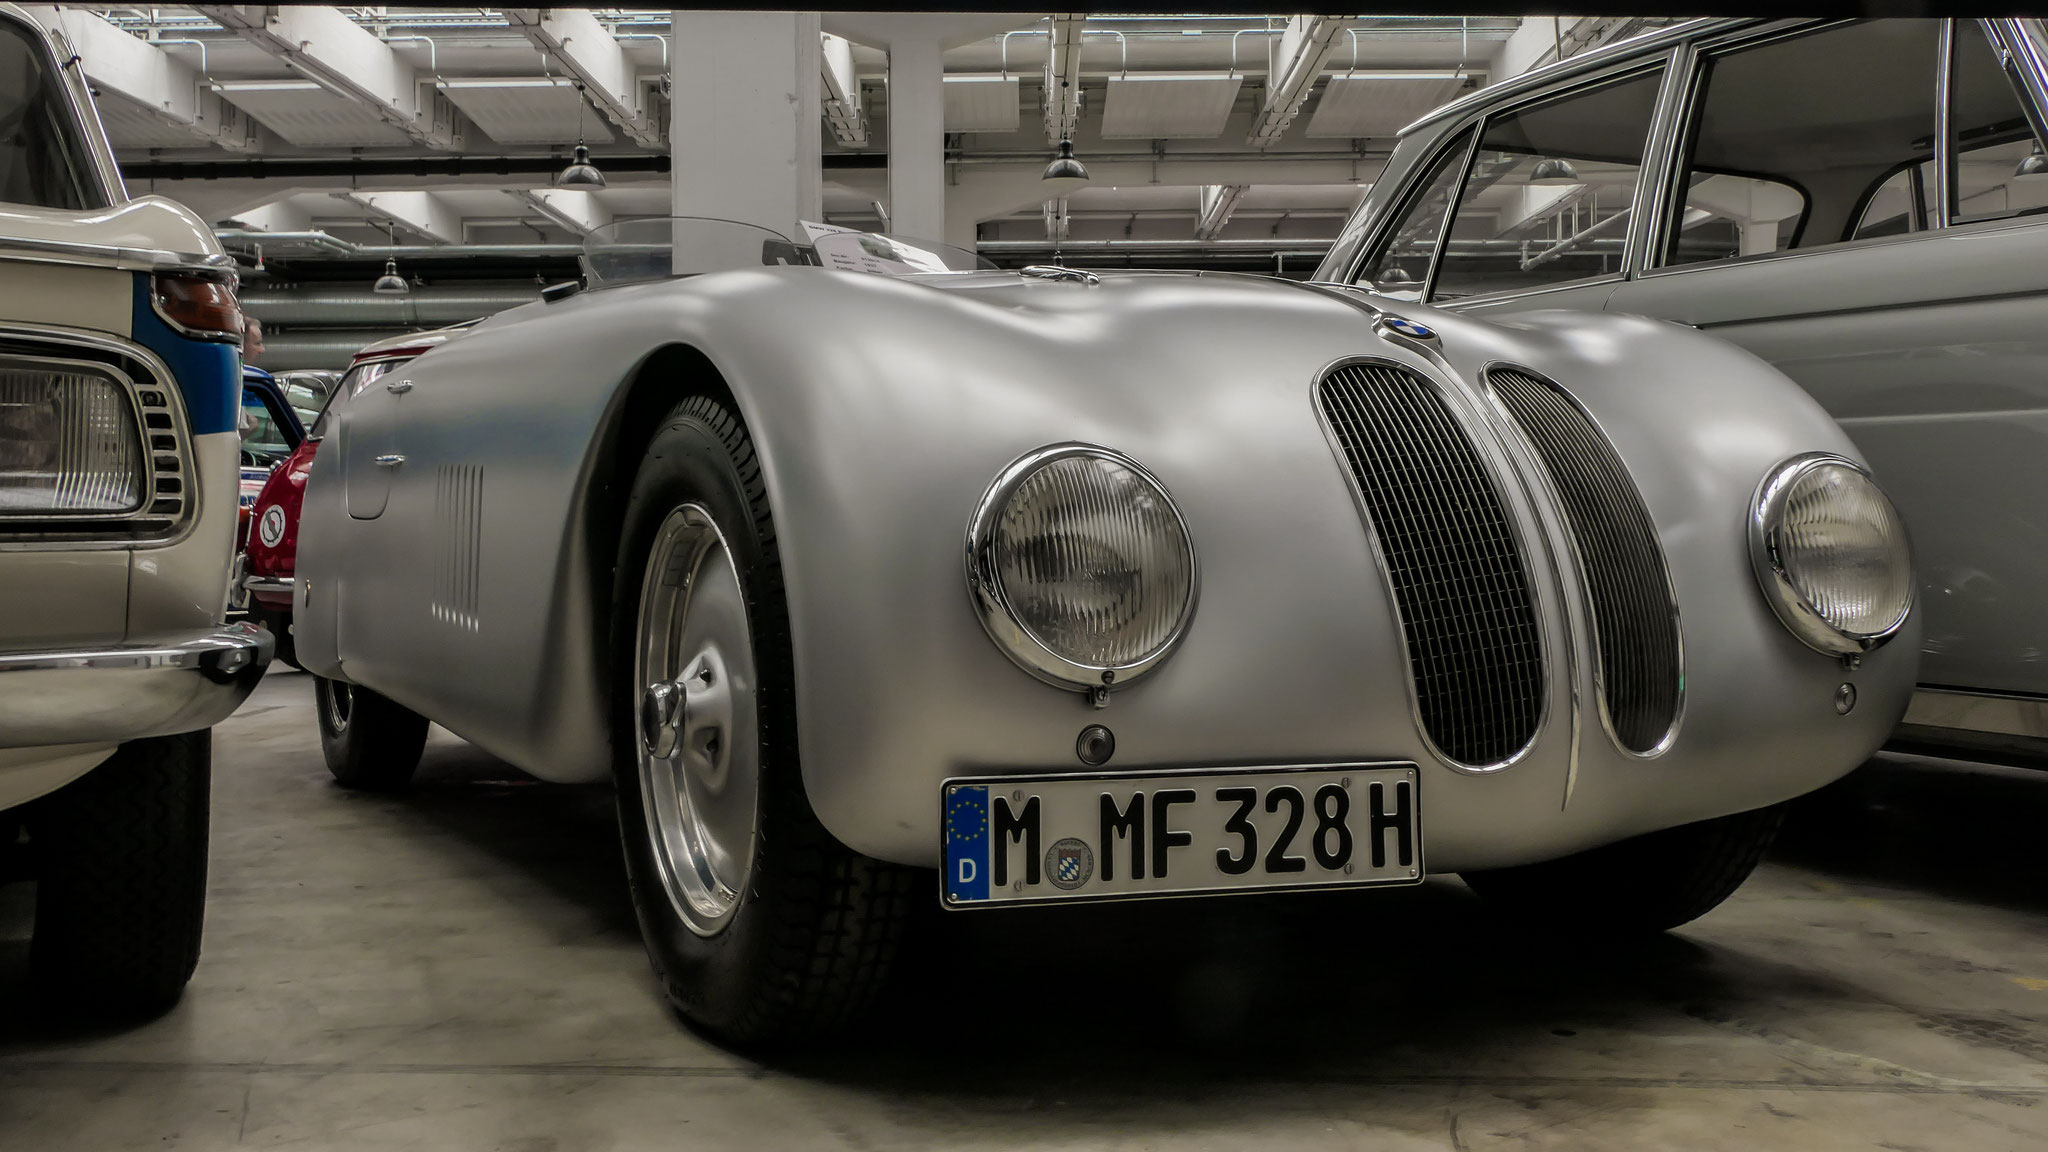 BMW 328 Touring Roadster - M-MF-328H